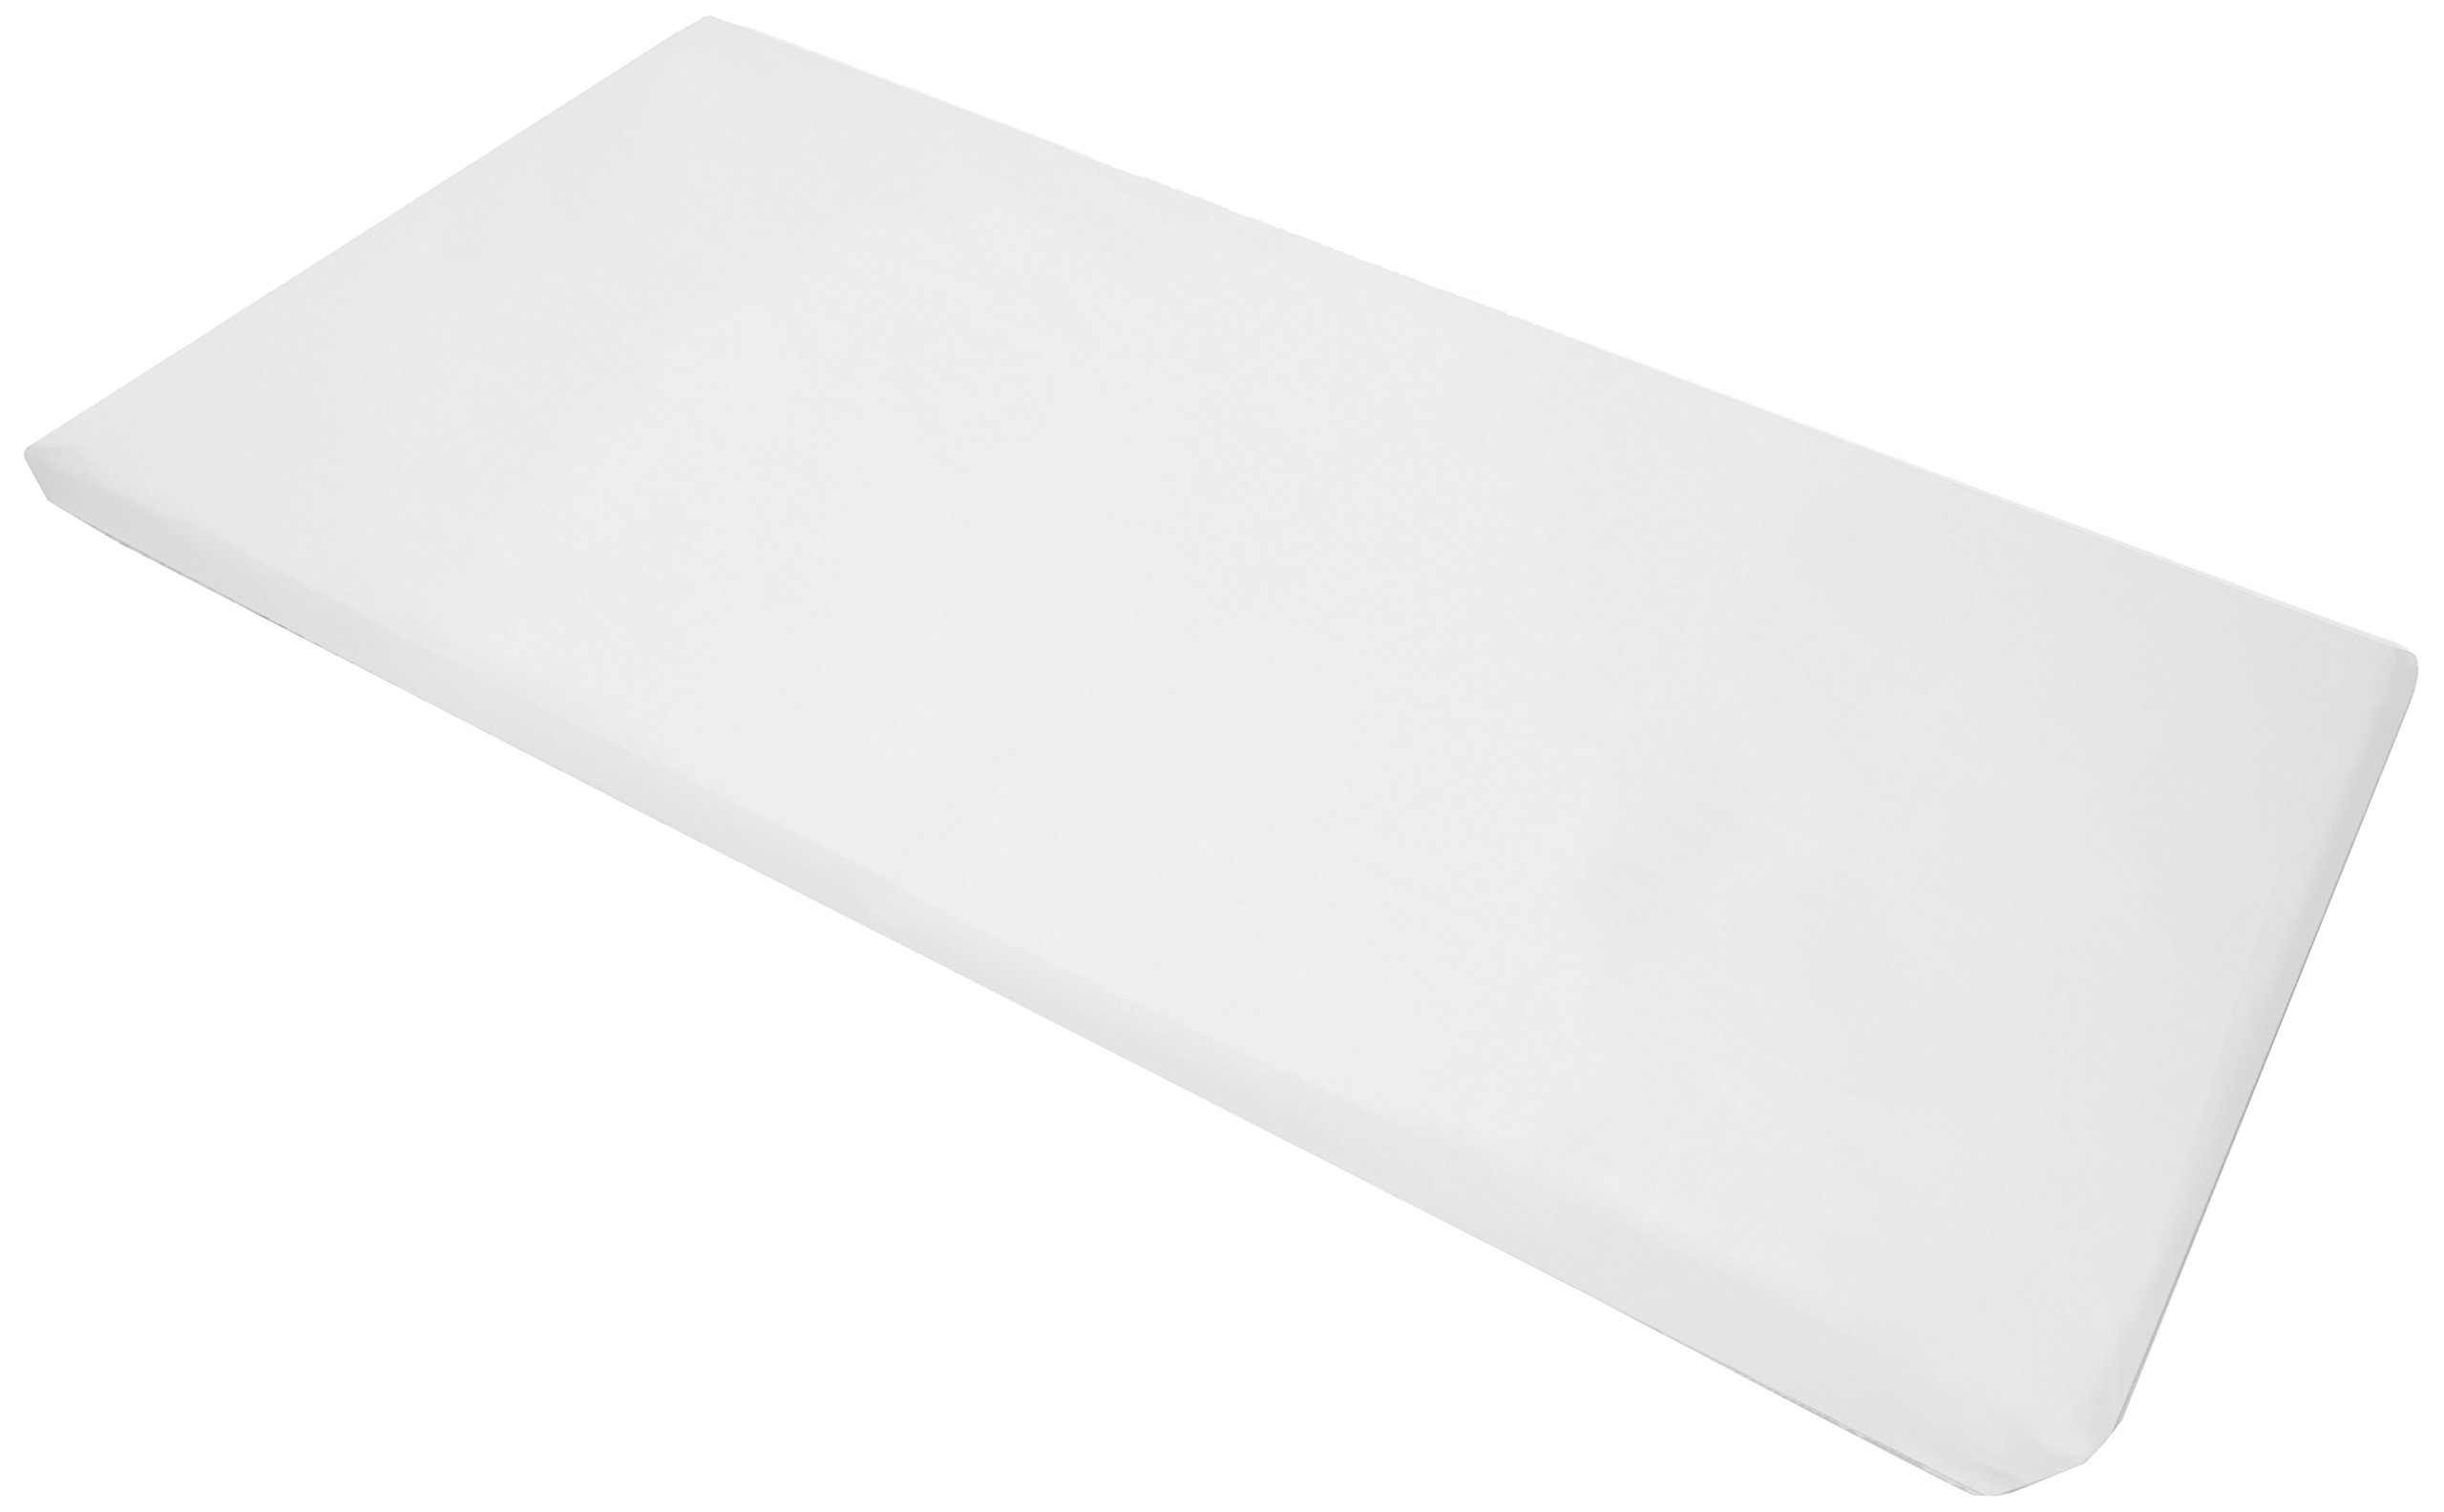 American Baby Company 10-Piece Cotton-Polyester Blend, Standard Day Care Nap Mat Sheet, White, 24'' x 48'' x 4'' by American Baby Company